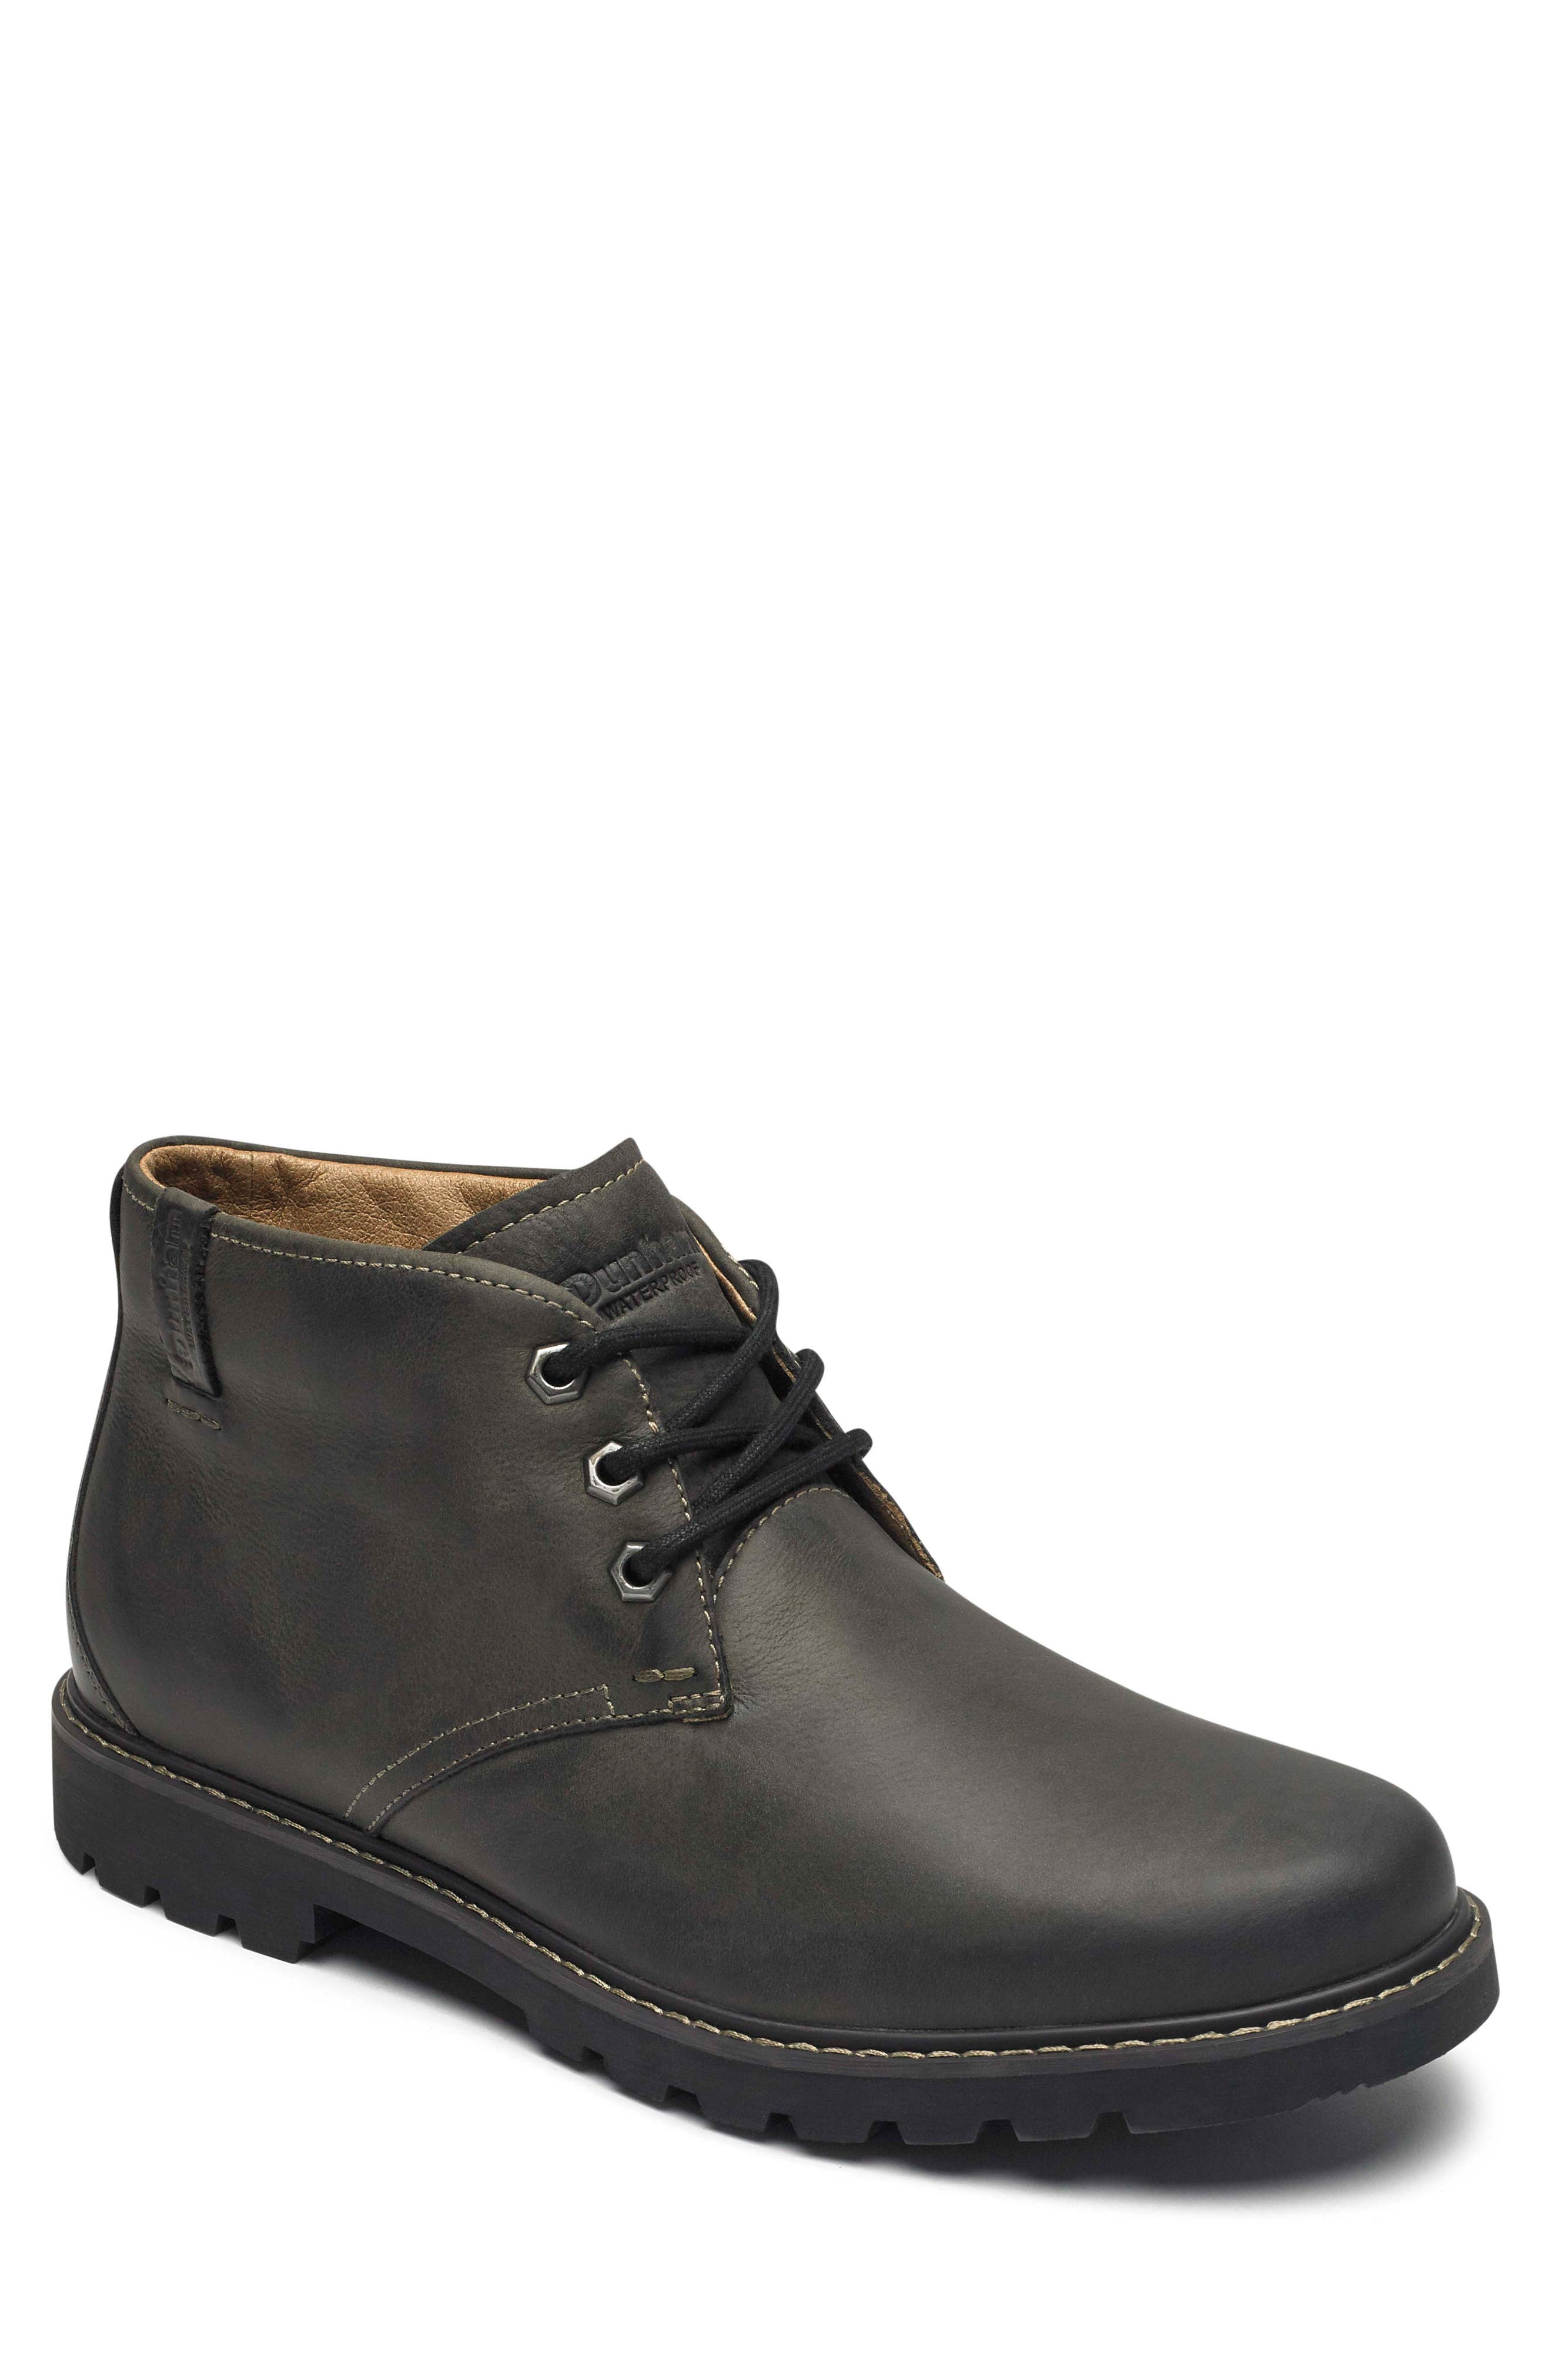 DUNHAM Royalton Chukka Boot, Main, color, FLAGSTONE LEATHER